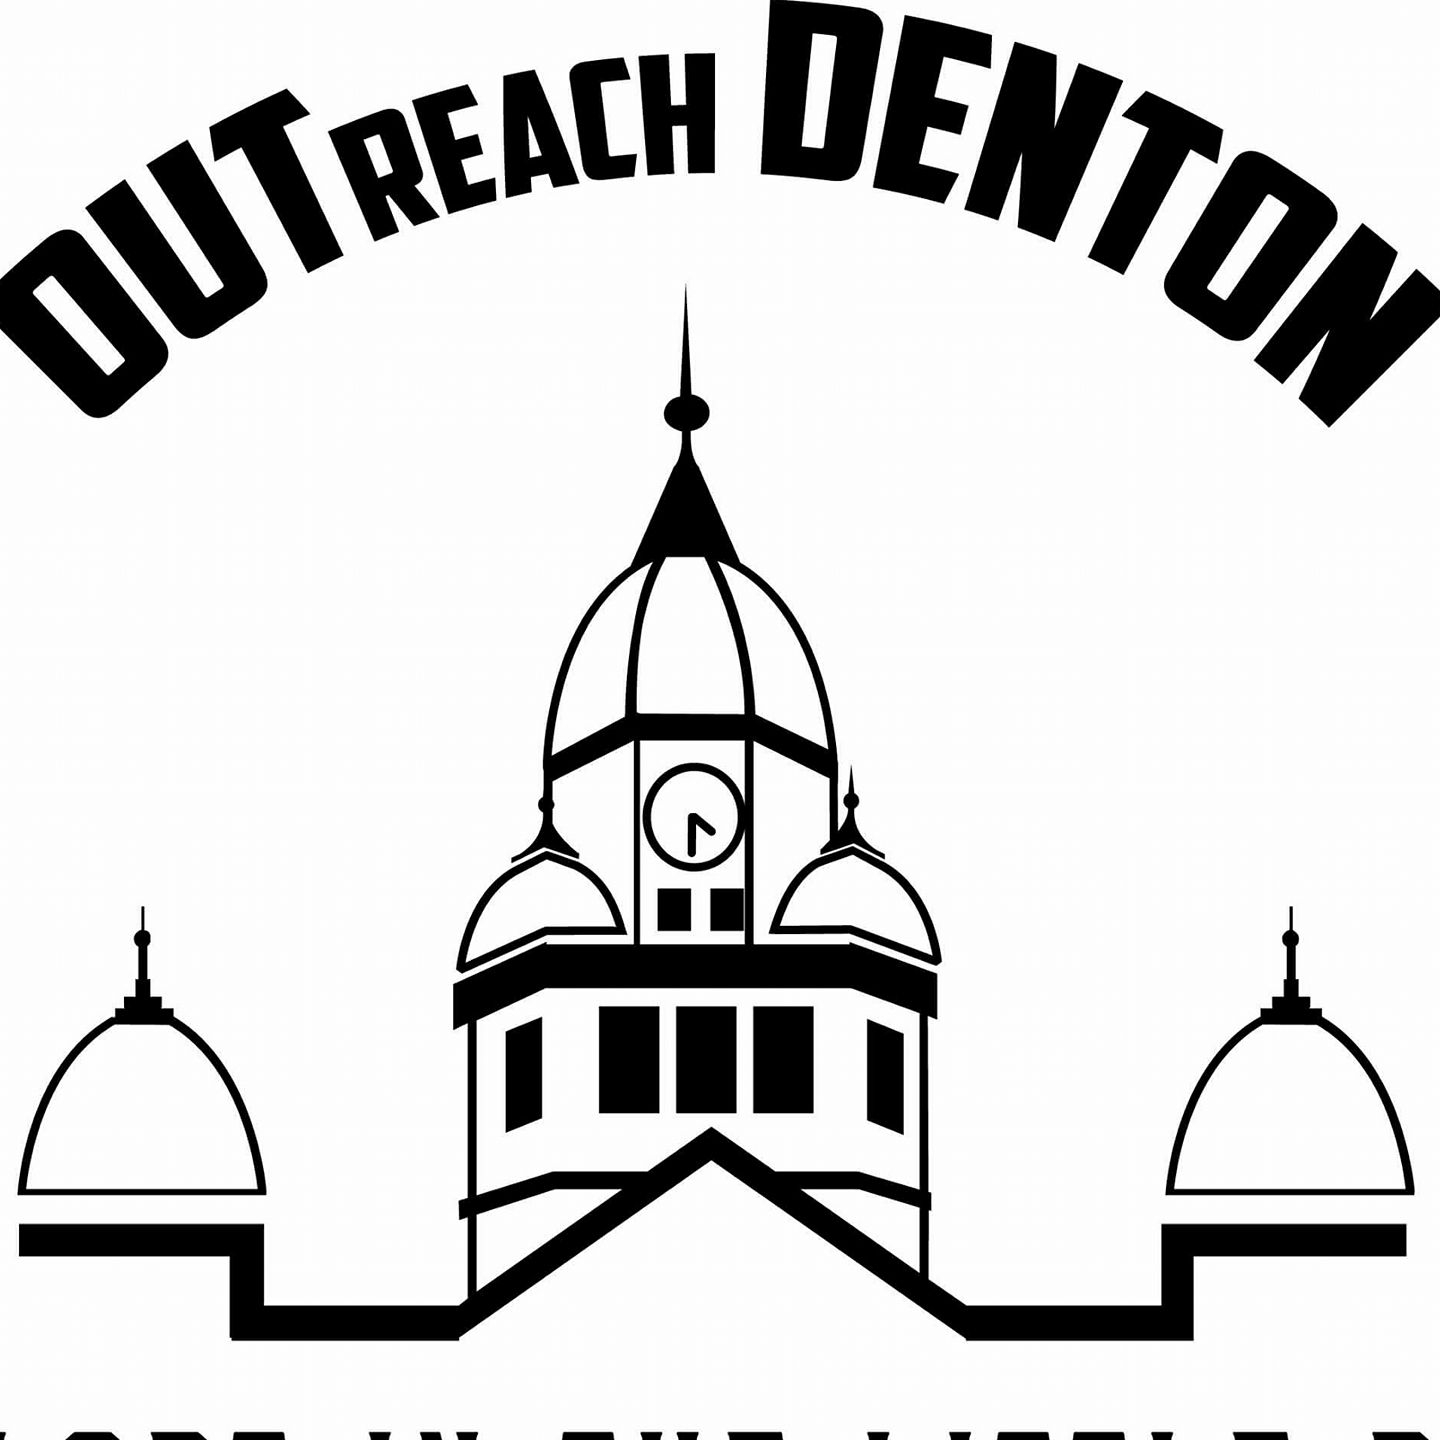 Outreach Denton - OUTreach Denton was created out of a need assessed by the members of the Denton Unitarian Universalist Fellowship who in 2010 recognized that Denton needed a place where LGBTQA youth and adults could gather for mutual support, resources, organizing, advocacy, and fun. OUTreach Denton is inspired largely by the efforts of the late Bruce Jarstfer whose courage and activism continue to inspire us.